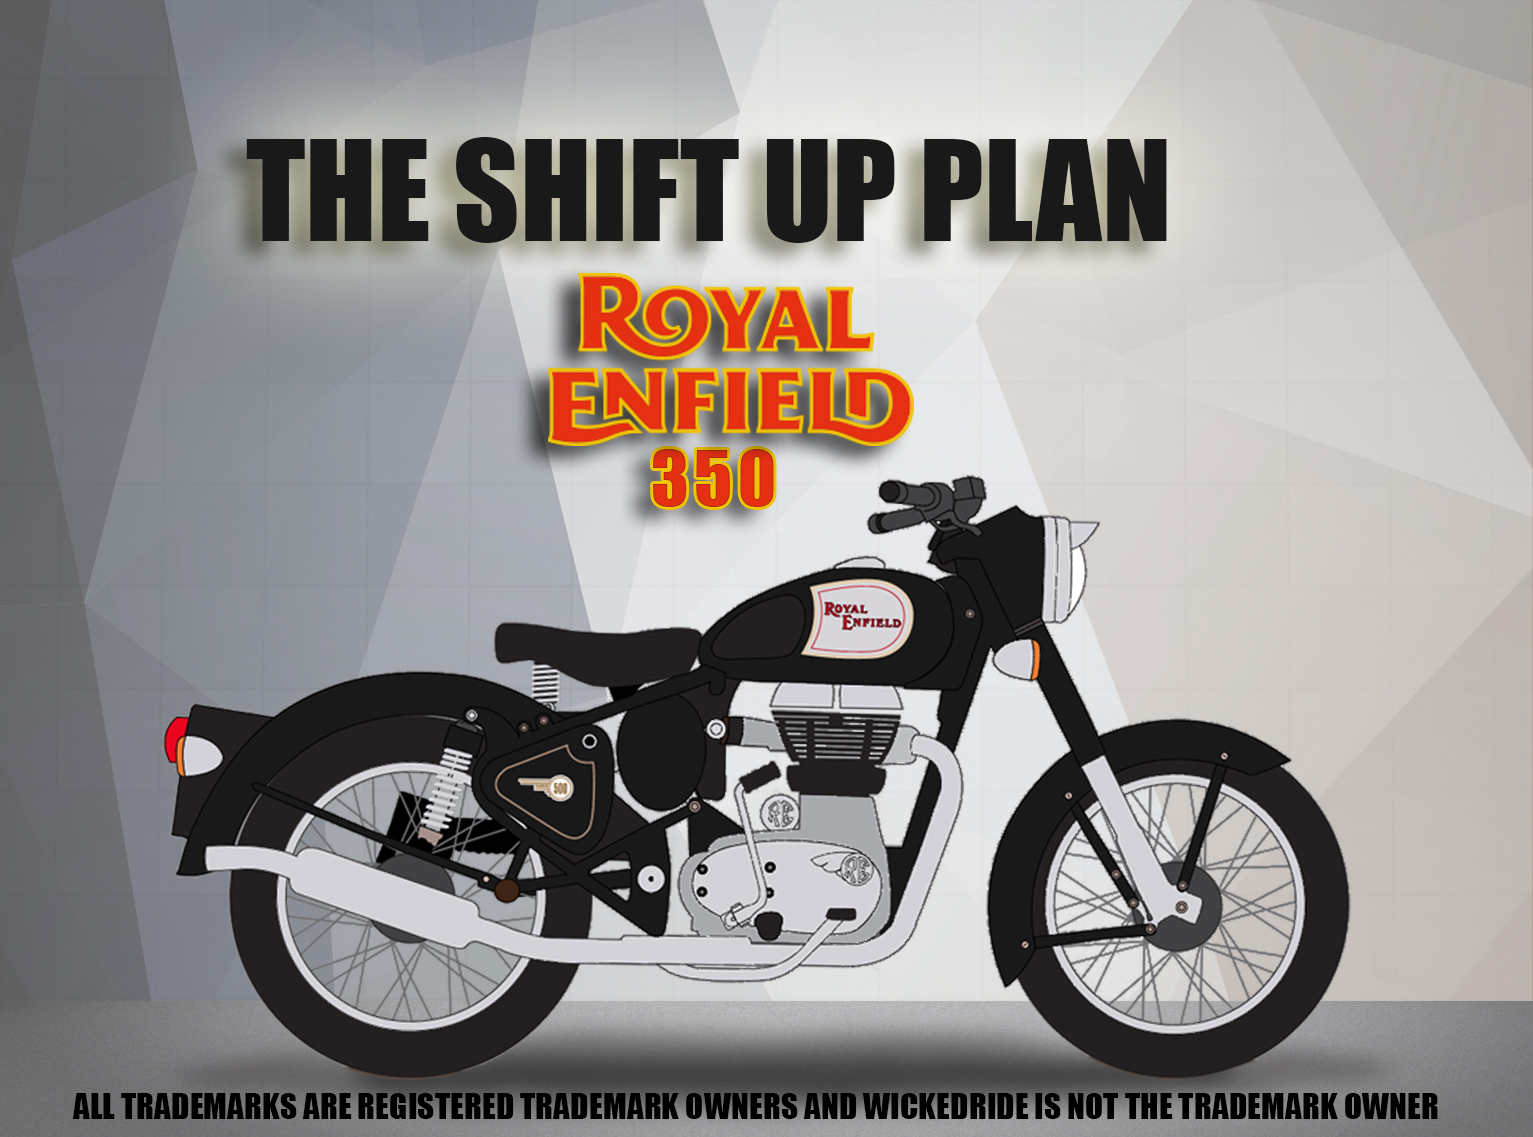 The Shift-Up plan - 350cc